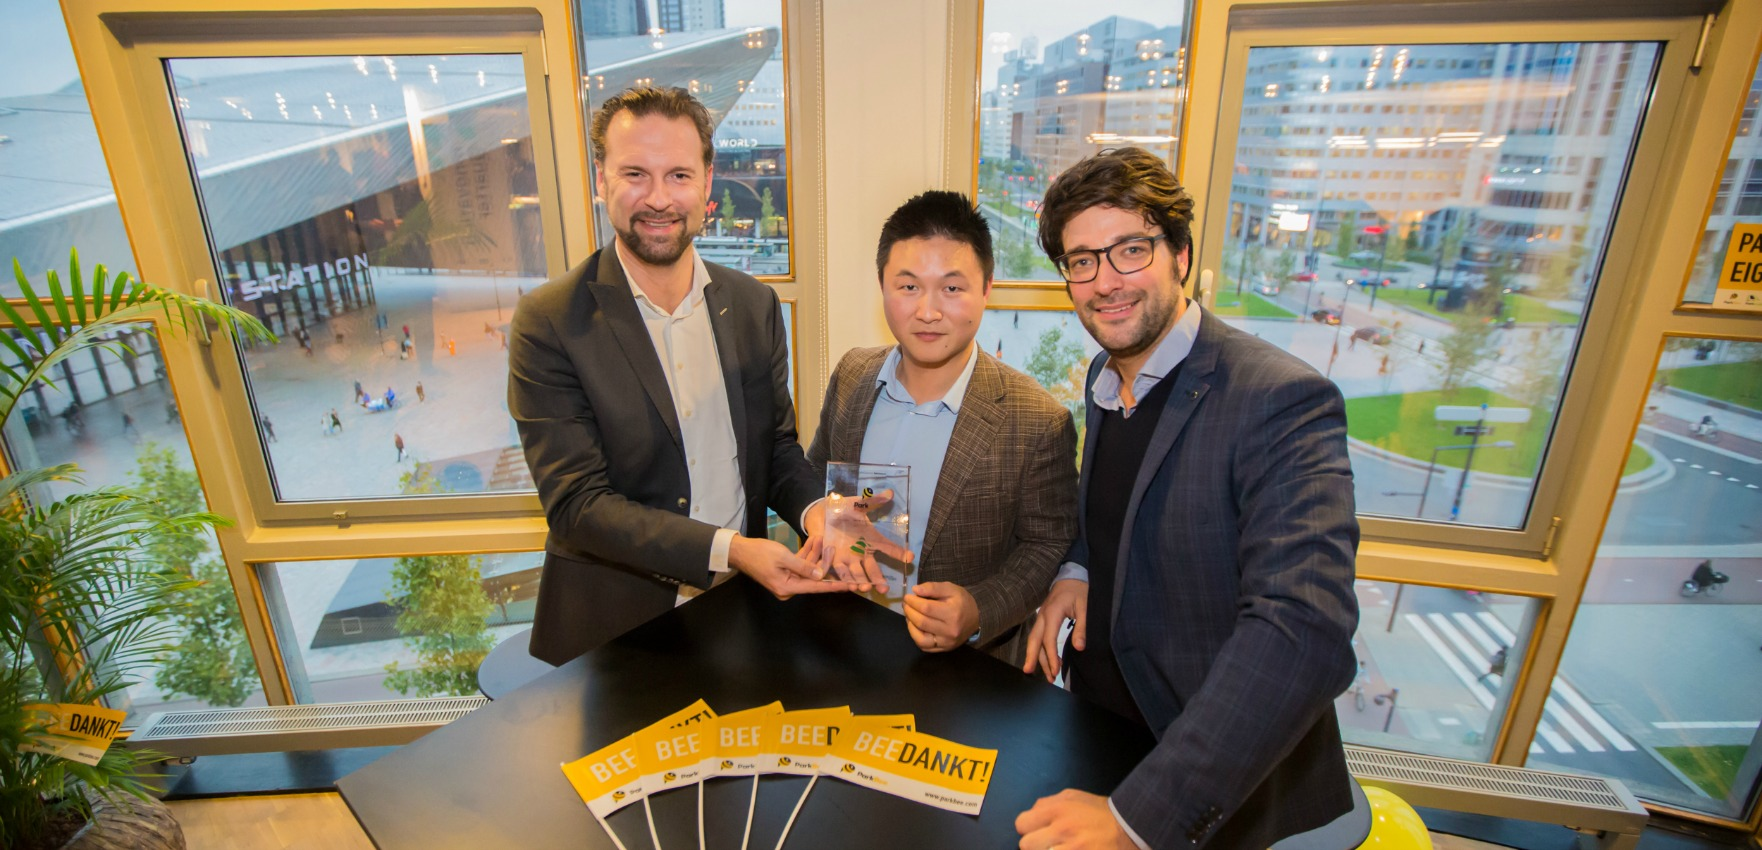 Parkbee gets 1.8 million euro investment to accelerate their UK expansion